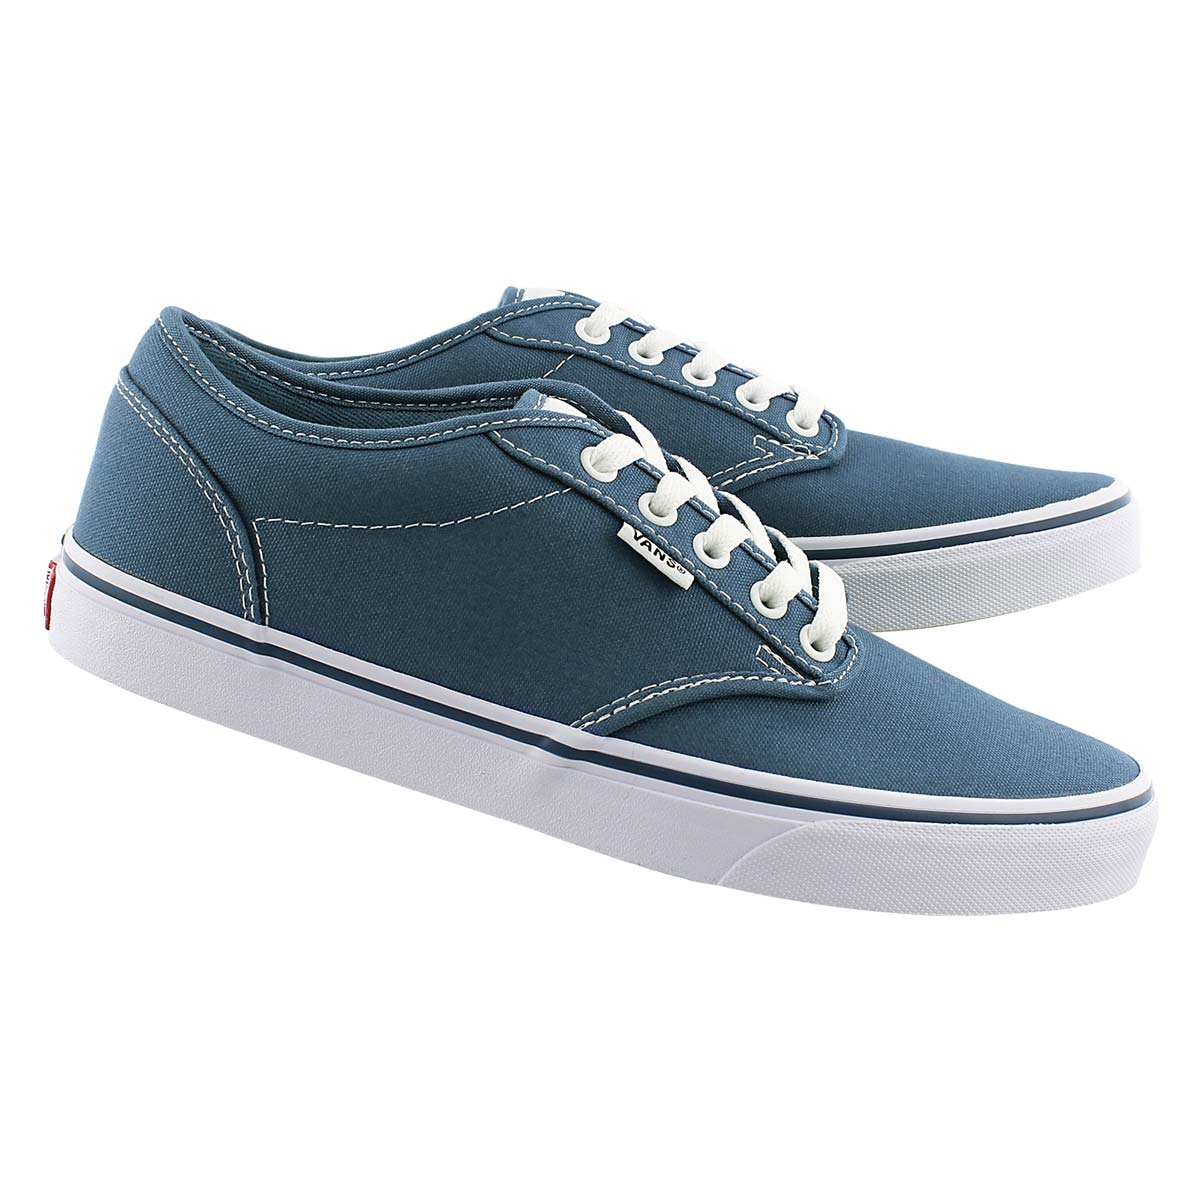 Mns Atwood blue canvas laceup sneaker